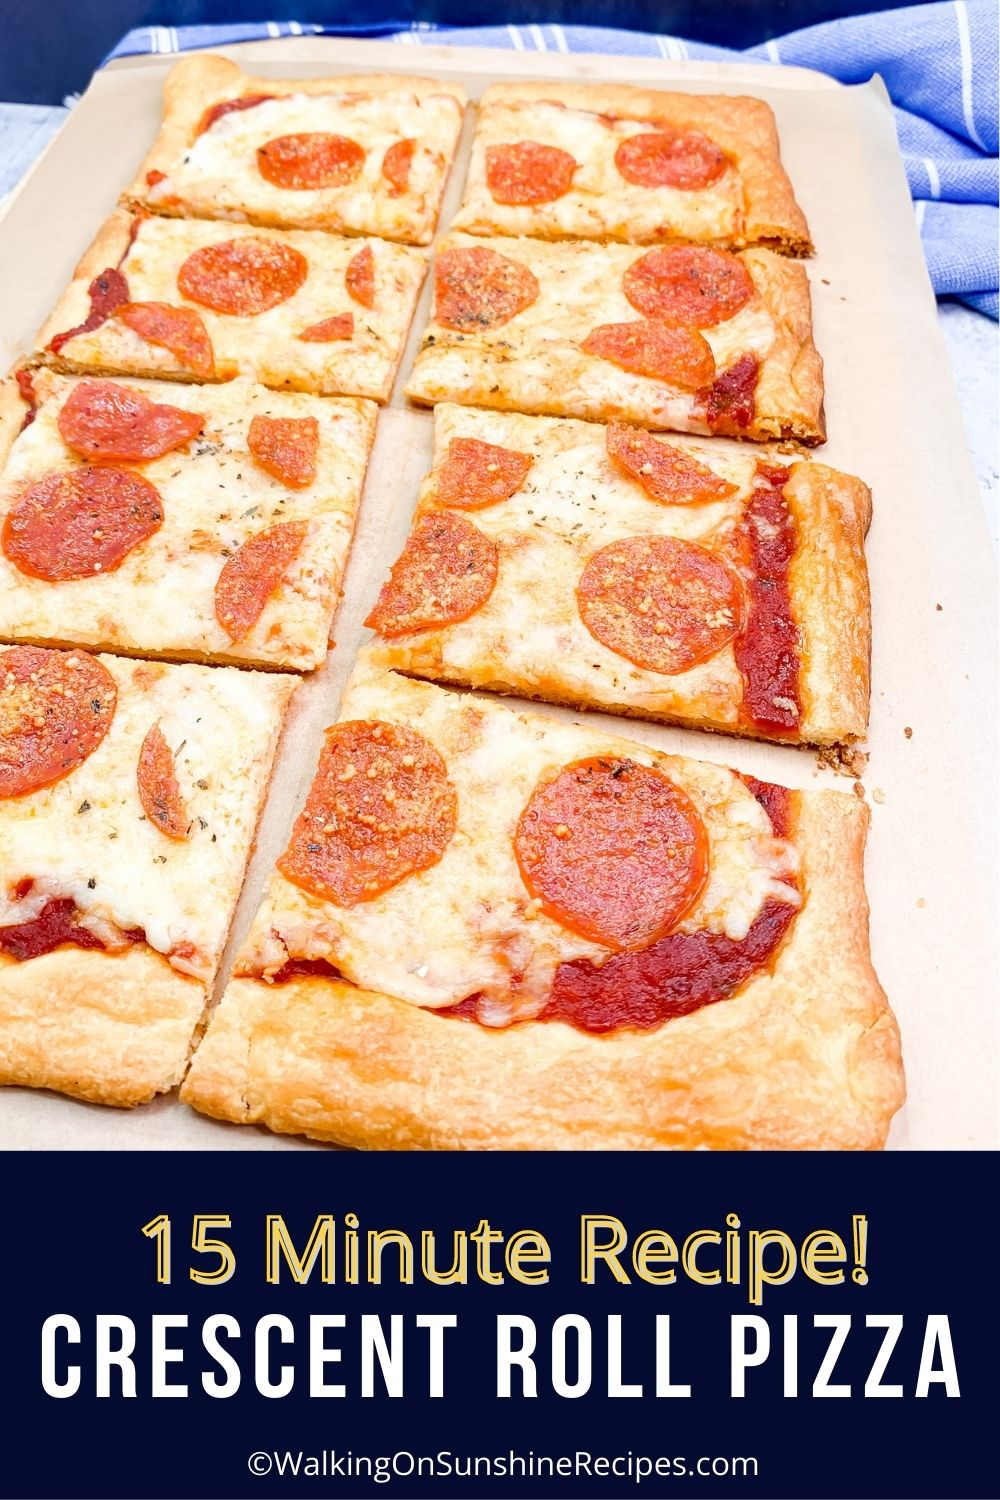 WOS Crescent Roll Pizza Pin Template  2.jpg